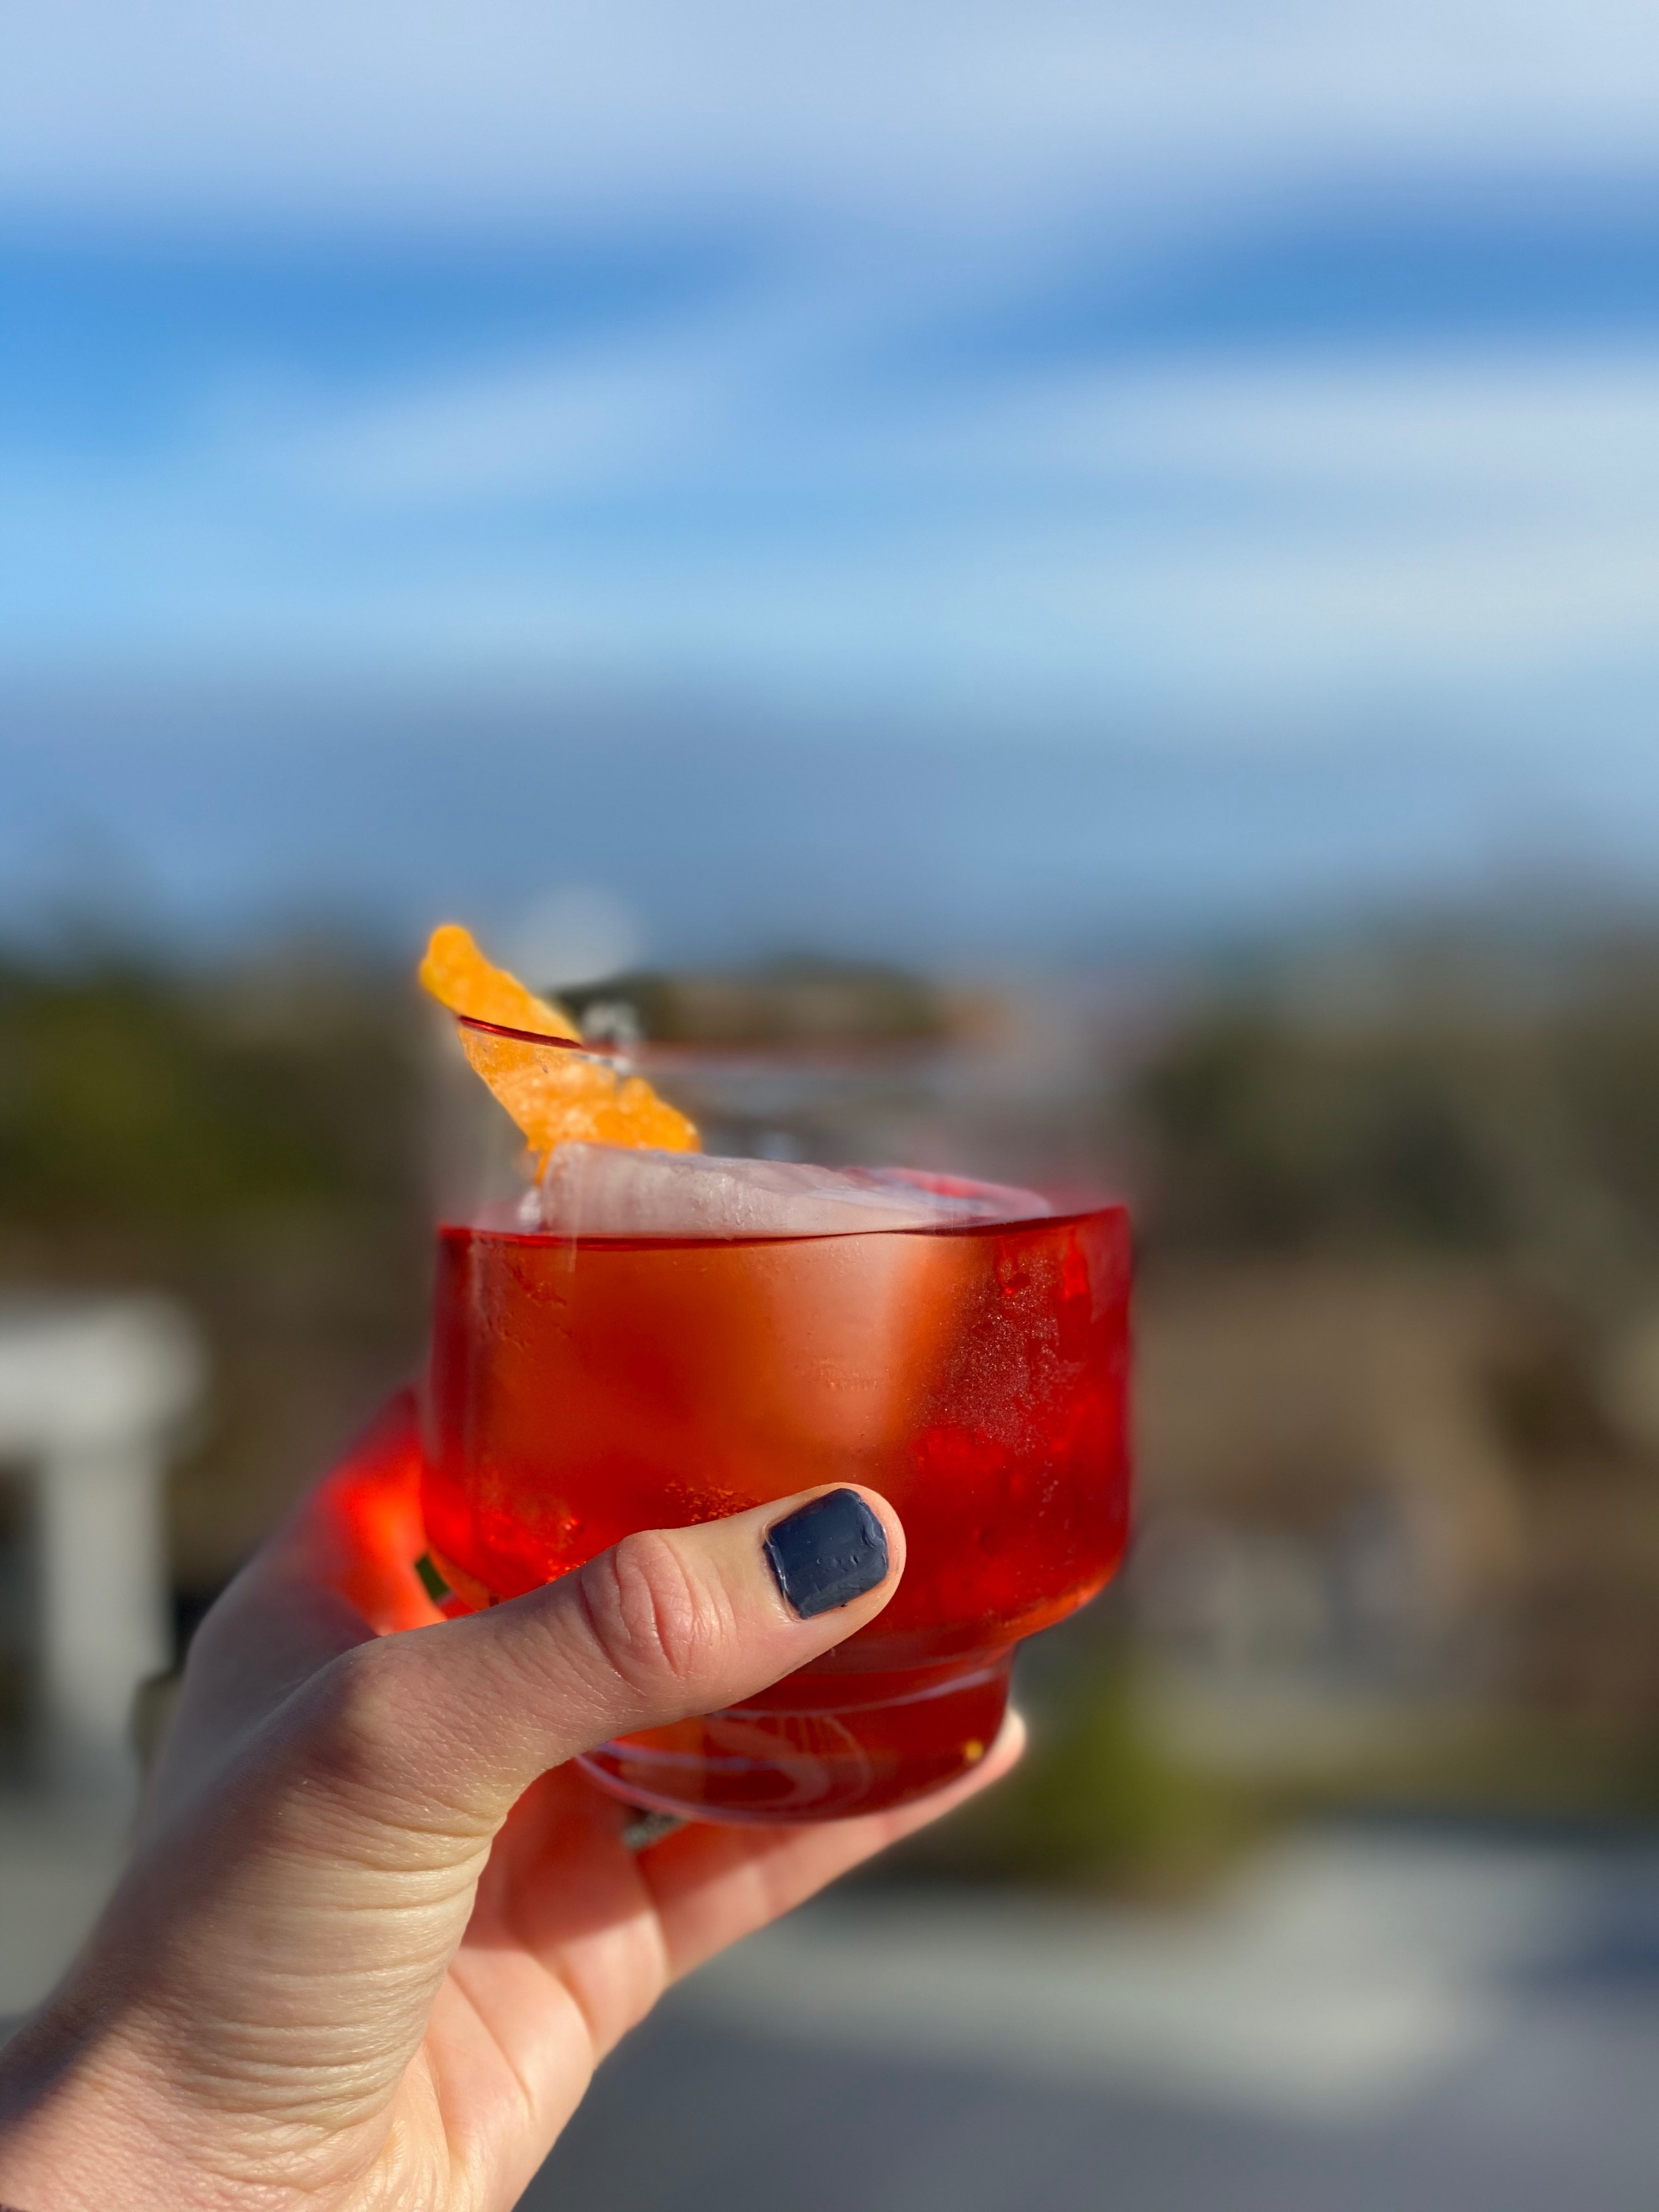 Holding a negroni outside with blue skies in the background.